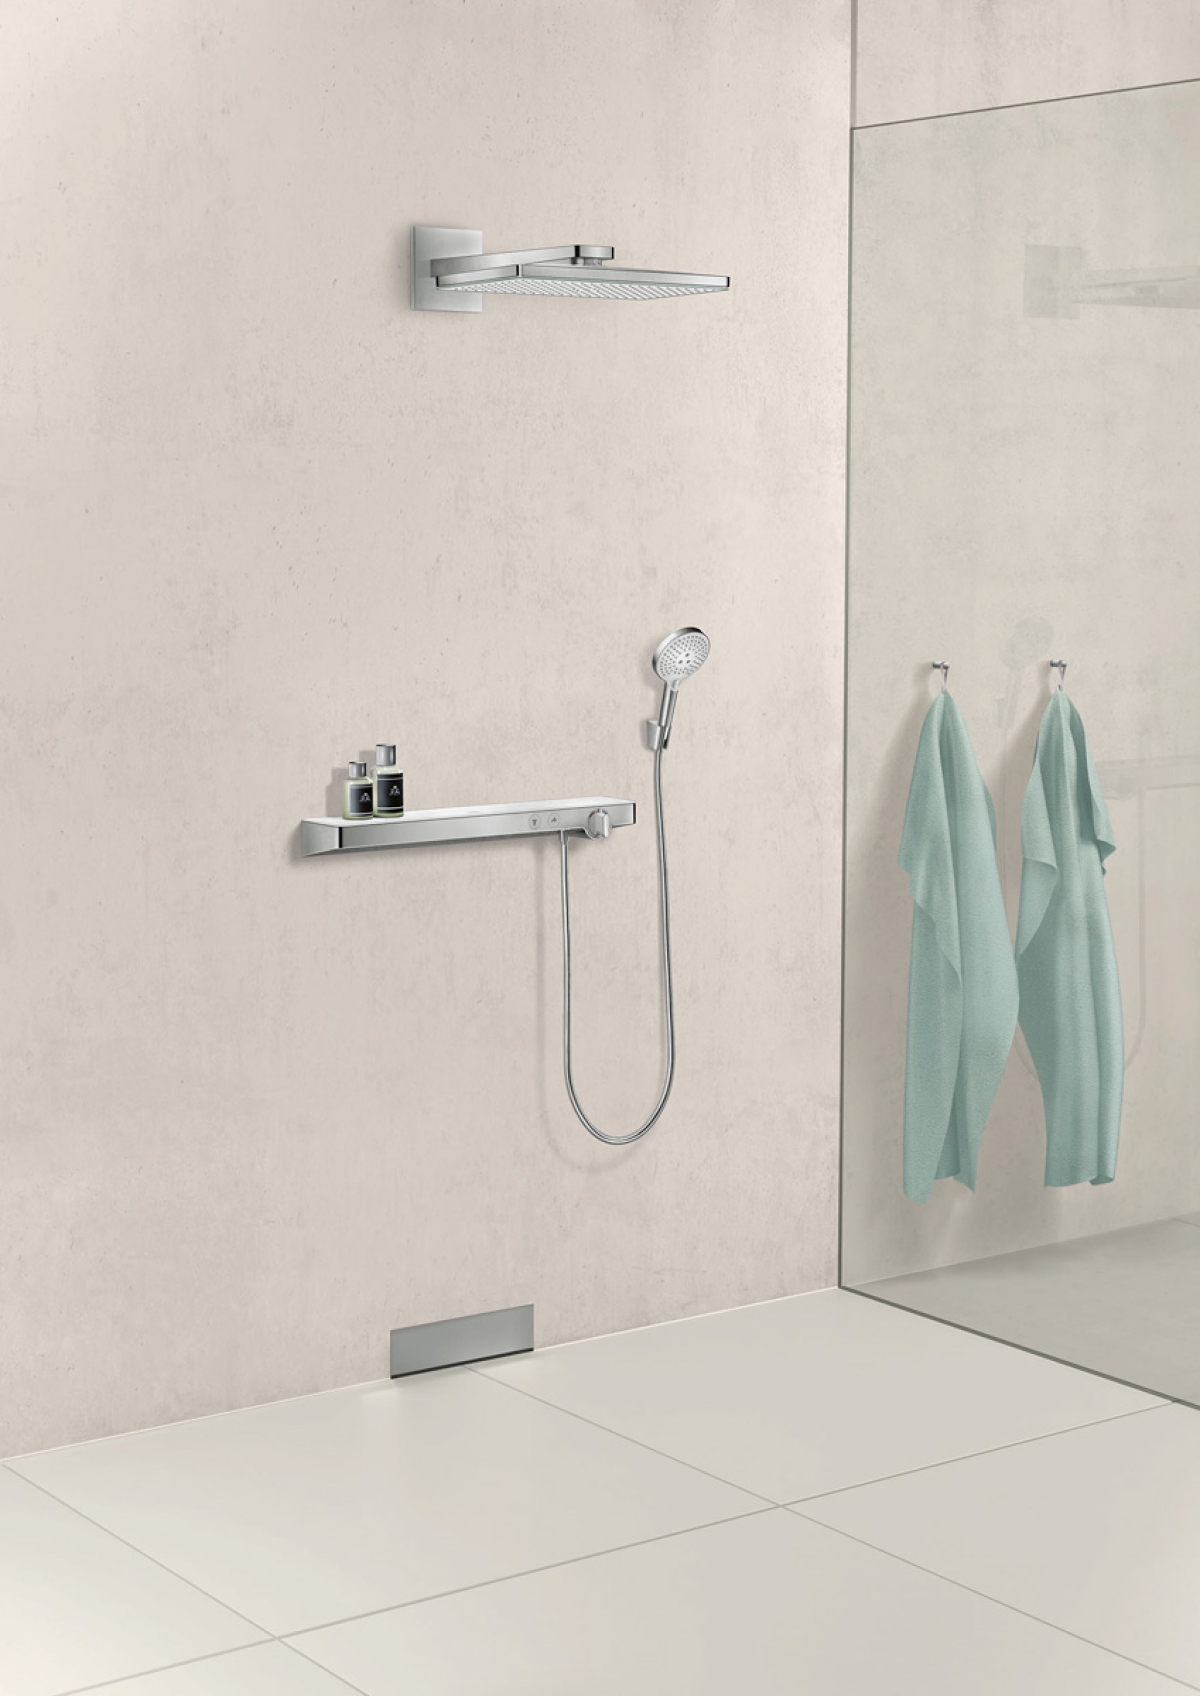 mitigeur thermostatique de douche showertablet hansgrohe. Black Bedroom Furniture Sets. Home Design Ideas